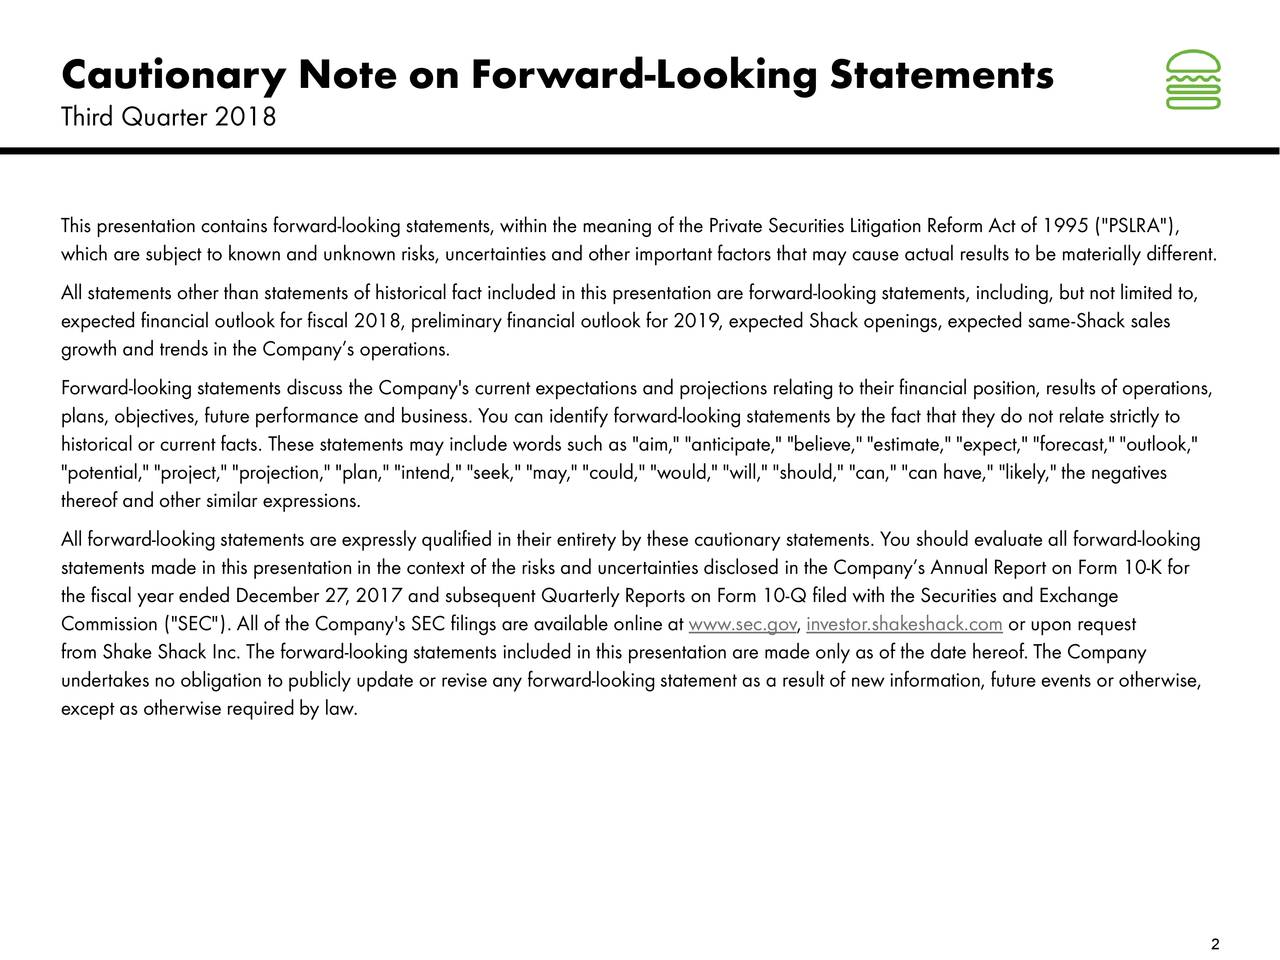 """Third Quarter 2018 This presentation contains forward-looking statements, within the meaning of the Private Securities Litigation Reform Act of 1995 (""""PSLRA""""), which are subject to known and unknown risks, uncertainties and other important factors that may cause actual results to be materially different. All statements other than statements of historical fact included in this presentation are forward-looking statements, including,but not limited to, expected financial outlook for fiscal 2018, preliminary financial outlook for 2019, expected Shack openings, expected -Shack sales growth and trends in the Company's operations. Forward-looking statements discuss the Company's current expectations and projections relating to their financial position, results of operations, plans, objectives, future performance and business. You can identify forward-looking statements by the fact that they do not relate strictly to historical or current facts. These statements may include words such as """"aim,"""" """"anticipate,"""" """"believe,"""" """"estimate,"""" """"expect,"""" """"forecast,"""" """"outlook,"""" """"potential,"""" """"project,"""" """"projection,"""" """"plan,"""" """"intend,"""" """"seek,"""" """"may,"""" """"could,"""" """"would,"""" """"will,"""" """"should,"""" """"can,"""" """"can have,"""" """"likely,"""" the negatives thereof and other similar expressions. All forward-looking statements are expressly qualified in their entirety by these cautionary statements. You should evaluate all forward-looking statements made in this presentation in the context of the risks and uncertainties disclosed in the Company's Annual Report on Form 10-K for the fiscal year ended December 27, 2017 and subsequent Quarterly Reports on Form 10-Q filed with the Securities and Exchange Commission (""""SEC""""). All of the Company's SEC filings are available online atw.sec.gov, investor.shakeshack.com or upon request from Shake Shack Inc. The forward-looking statements included in this presentation are made only as of the date hereof. The Company undertakes no obligation to publicly update or revise any forward-loo"""